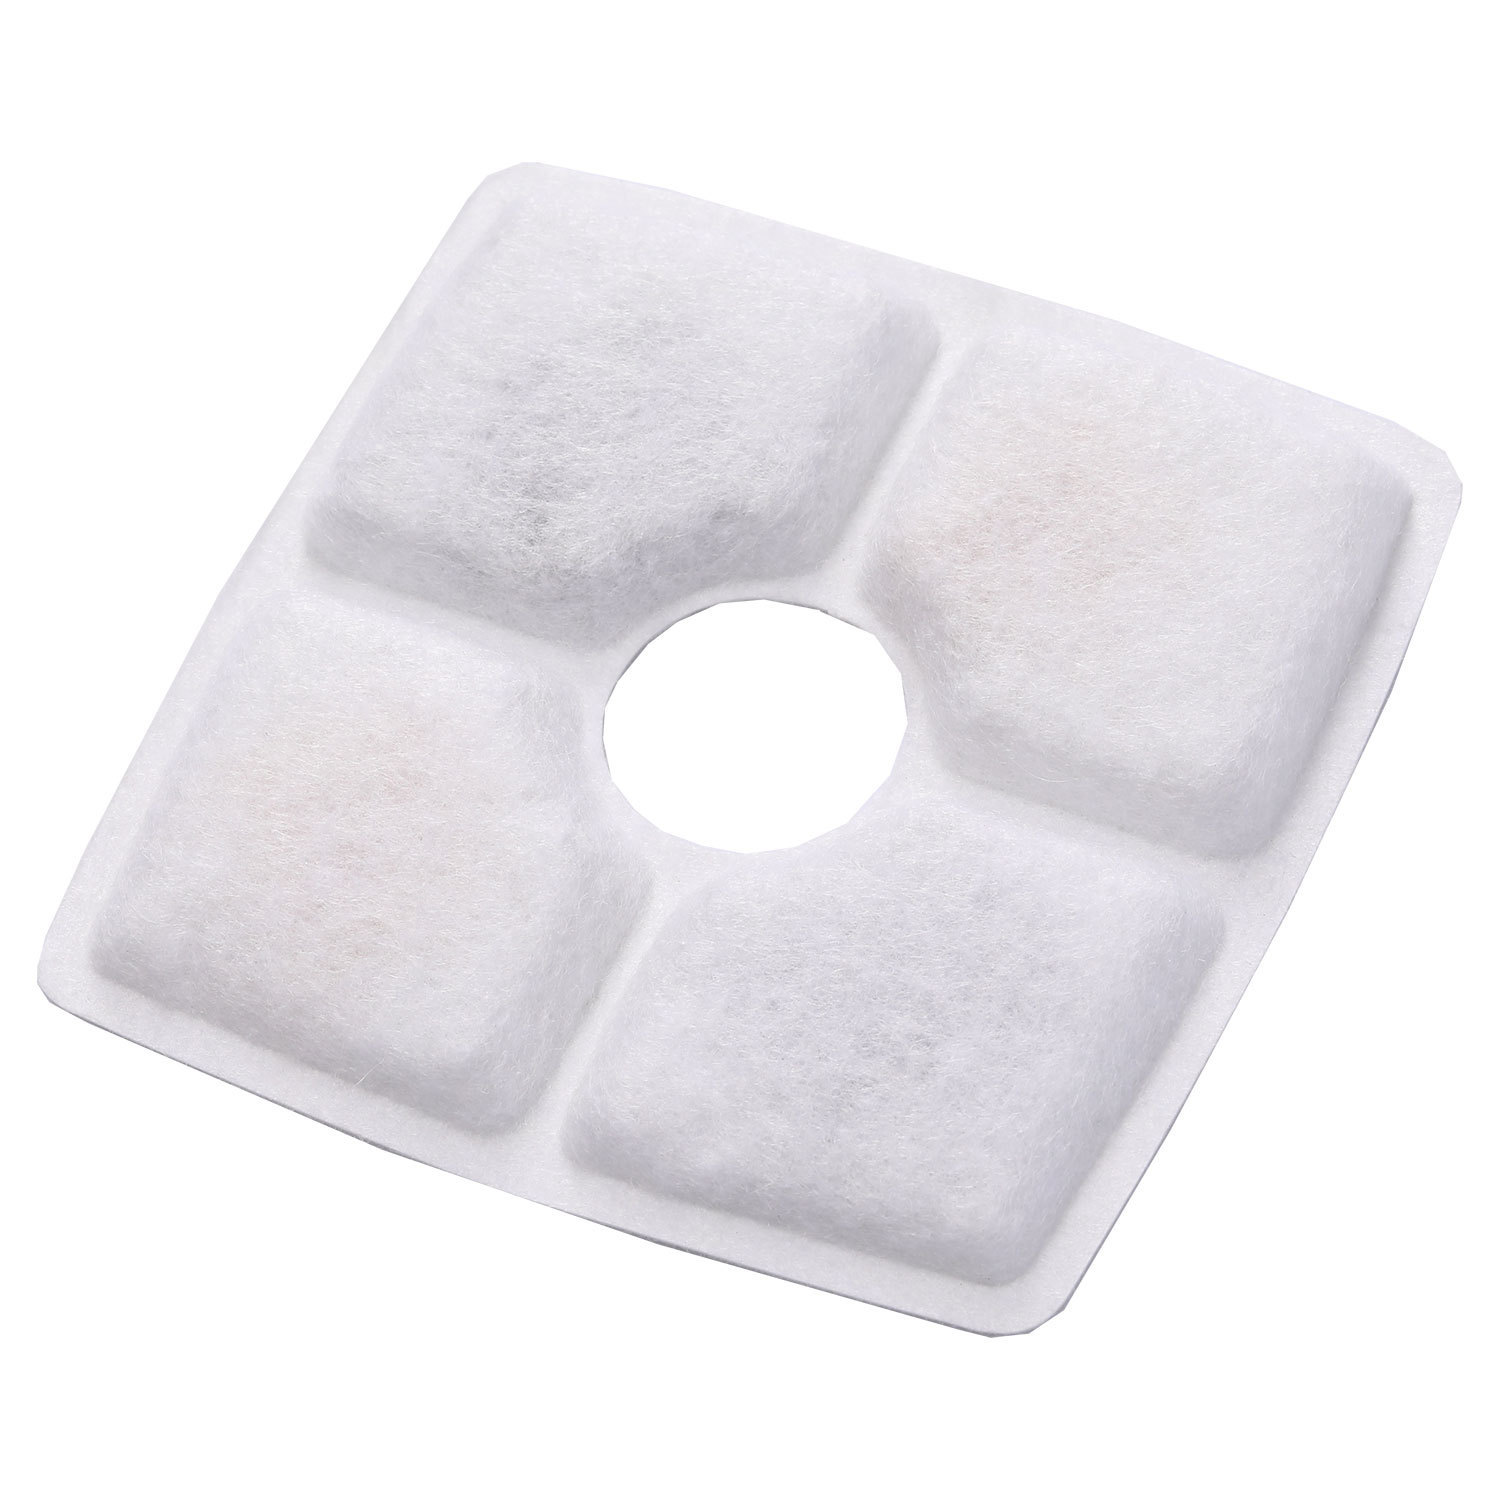 Filter element small flower square pet water dispenser accessories high iodine value coconut shell activated carbon and ion ex